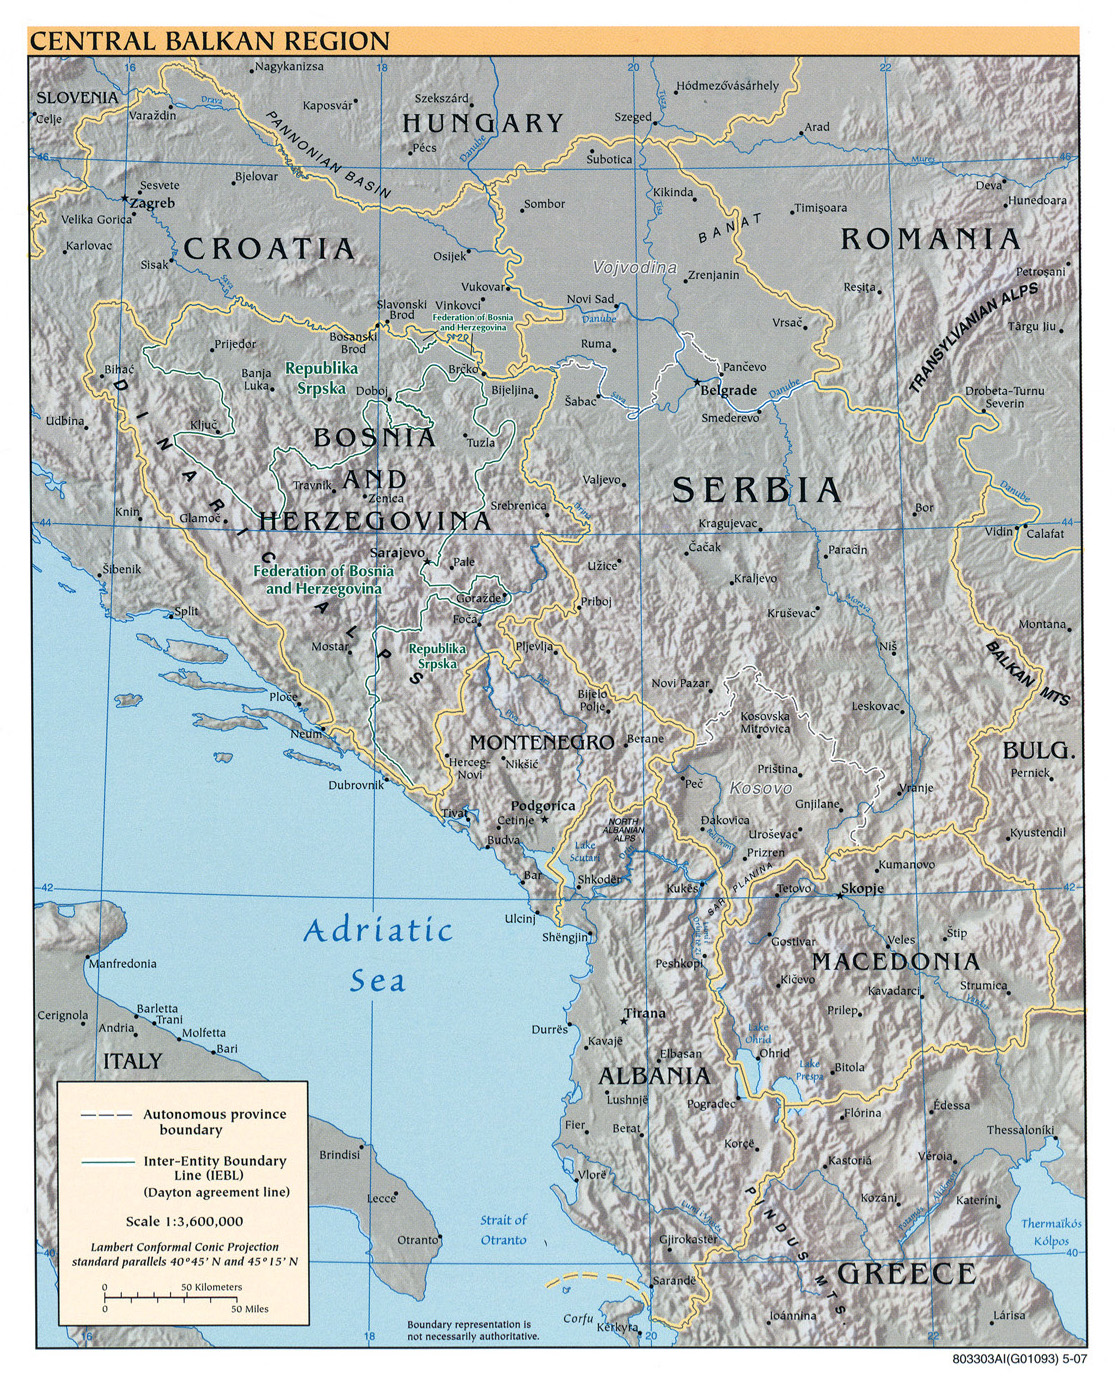 Large political map of Central Balkan Region with relief and major cities 2